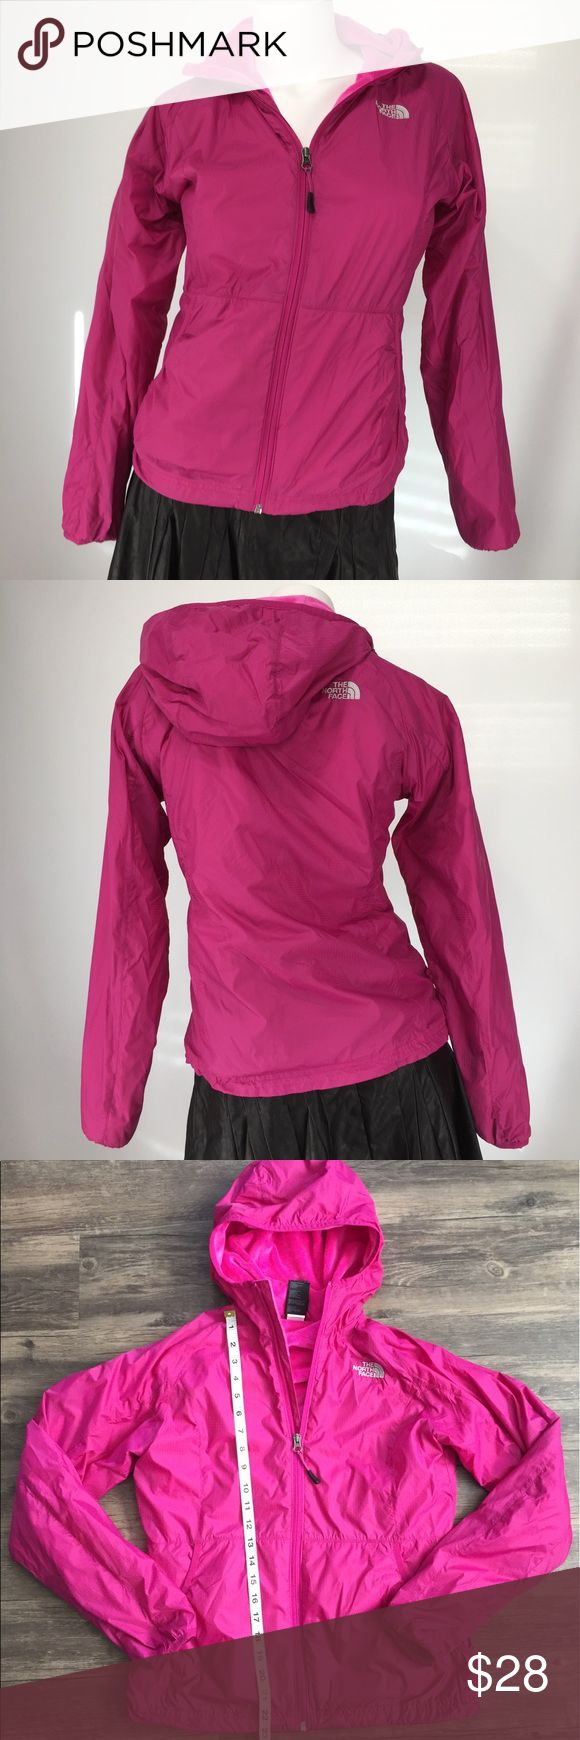 NORTH FACE Pink Fleece Lined Windbreaker! THE NORTH FACE Pink Fleece Lined Windbreaker with hood! Features fleece lining including pockets, sleeves and hood. Drawstring bottom. Zip packets. THE NORTH FACE logo on front and back. Great condition. The North Face Jackets & Coats